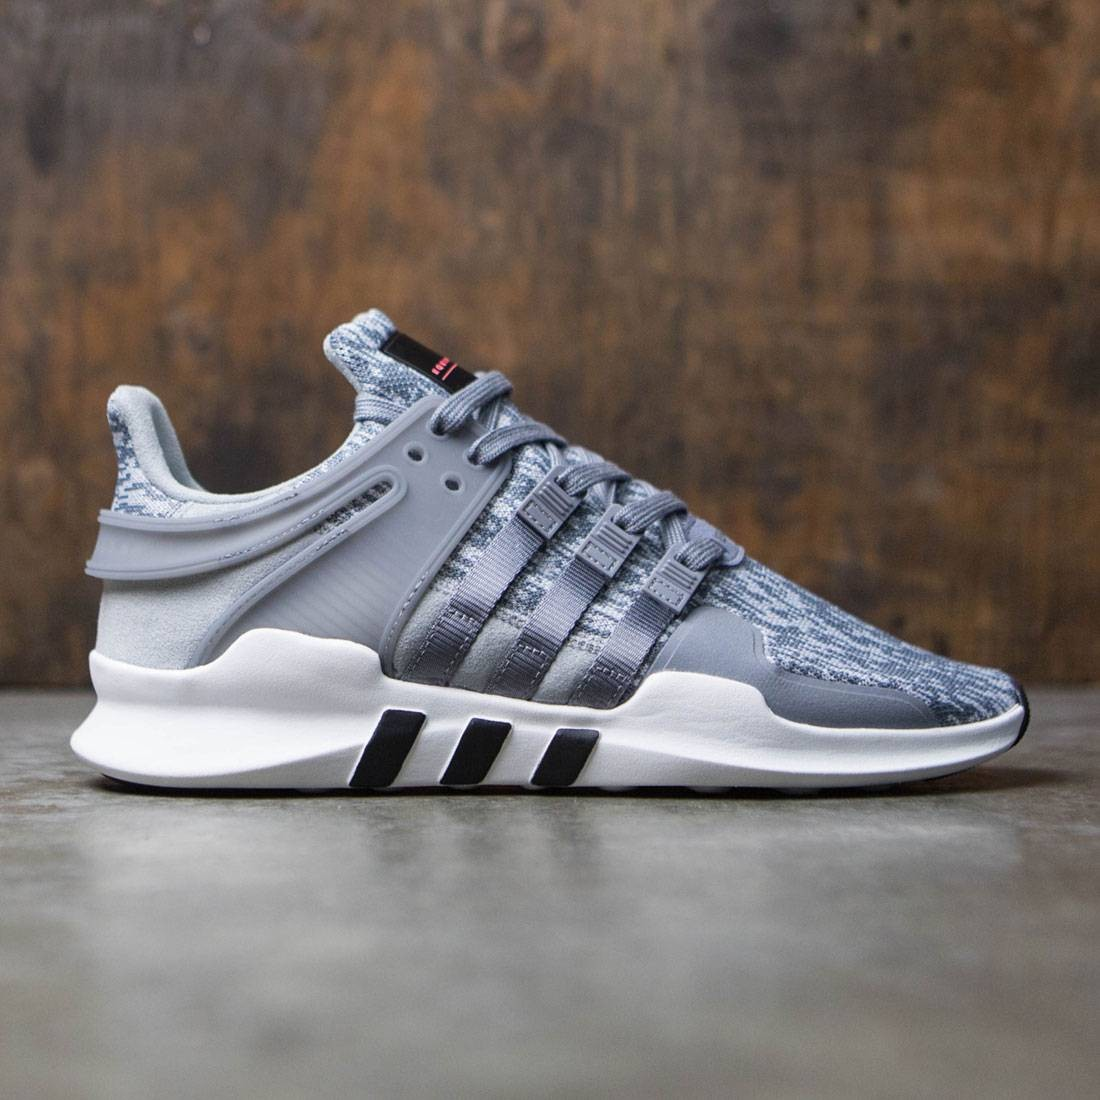 adidas eqt support adv mens for sale cheap online